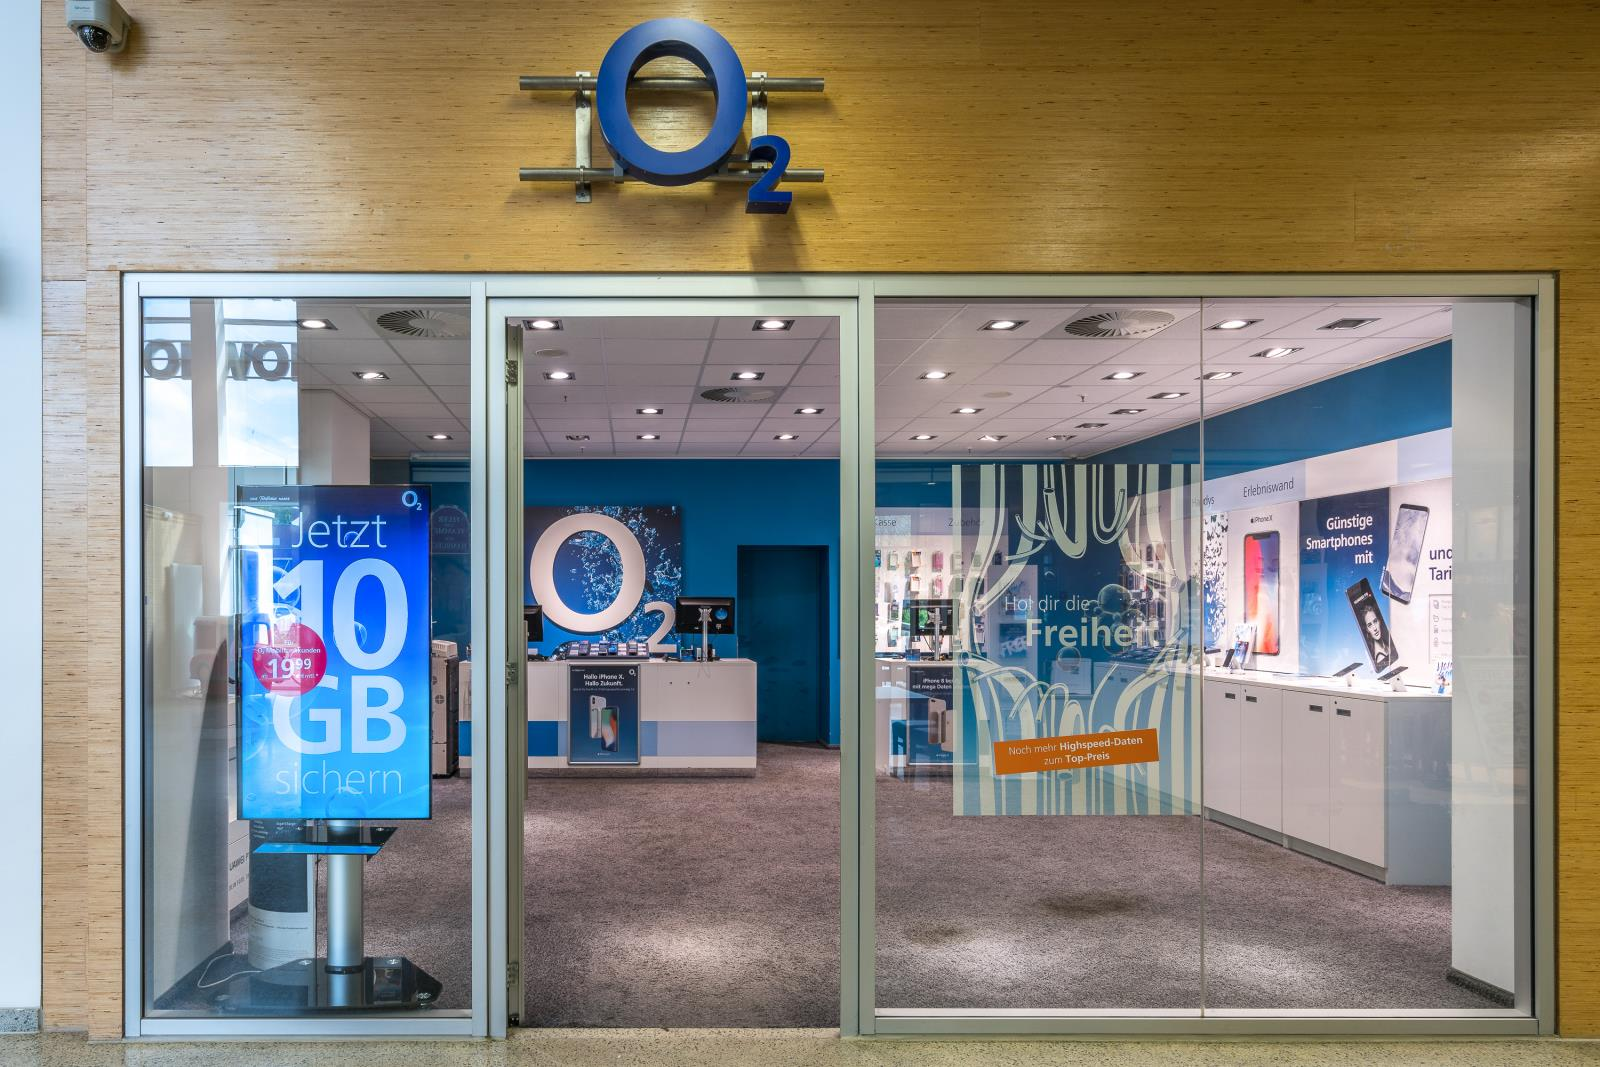 o2 Shop, Wilhelm-Strauß-Weg 4 in Hamburg